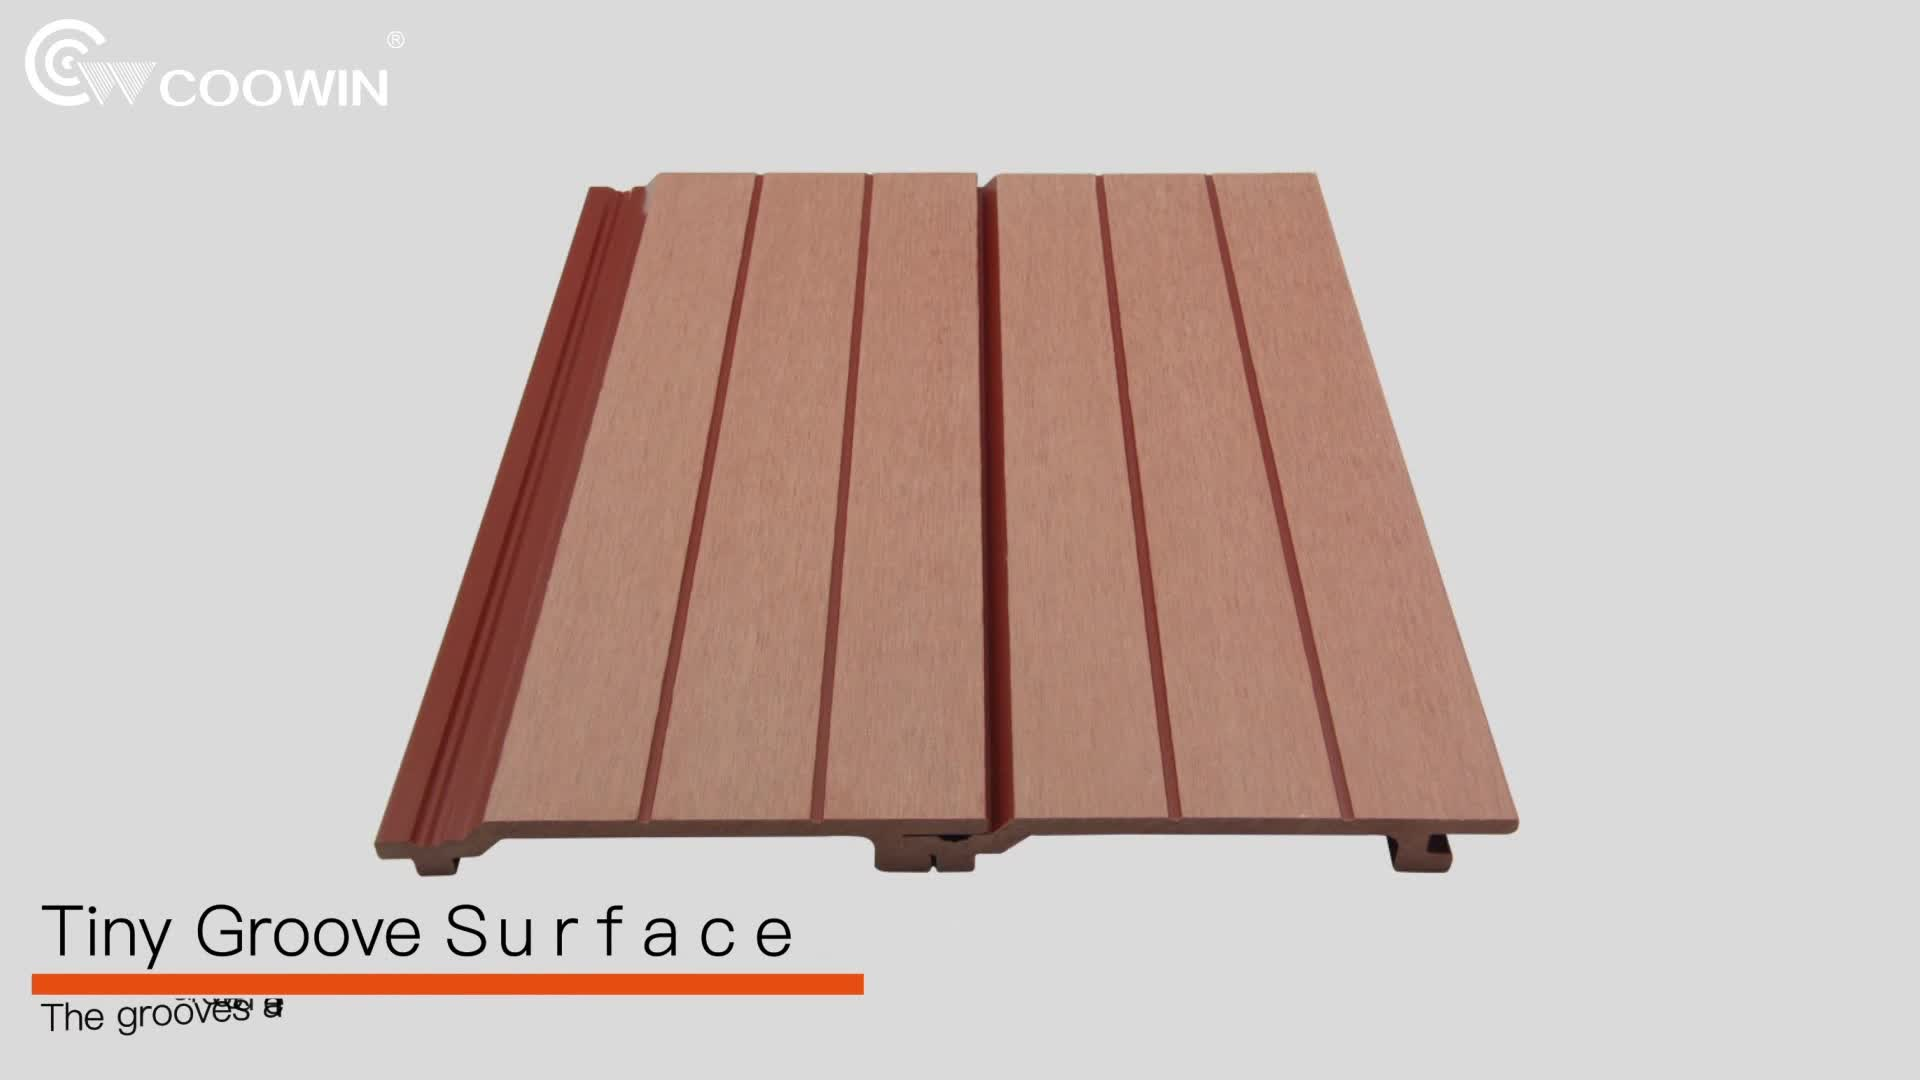 Plastic Wallpaper Wooden Prefab House Outdoor Wpc Wood Wall Covering 3d Wall Panel Buy Wpc Wall Panel Outdoor Wpc Wall Panel House Outdoor Wpc Wall Panel Product On Alibaba Com